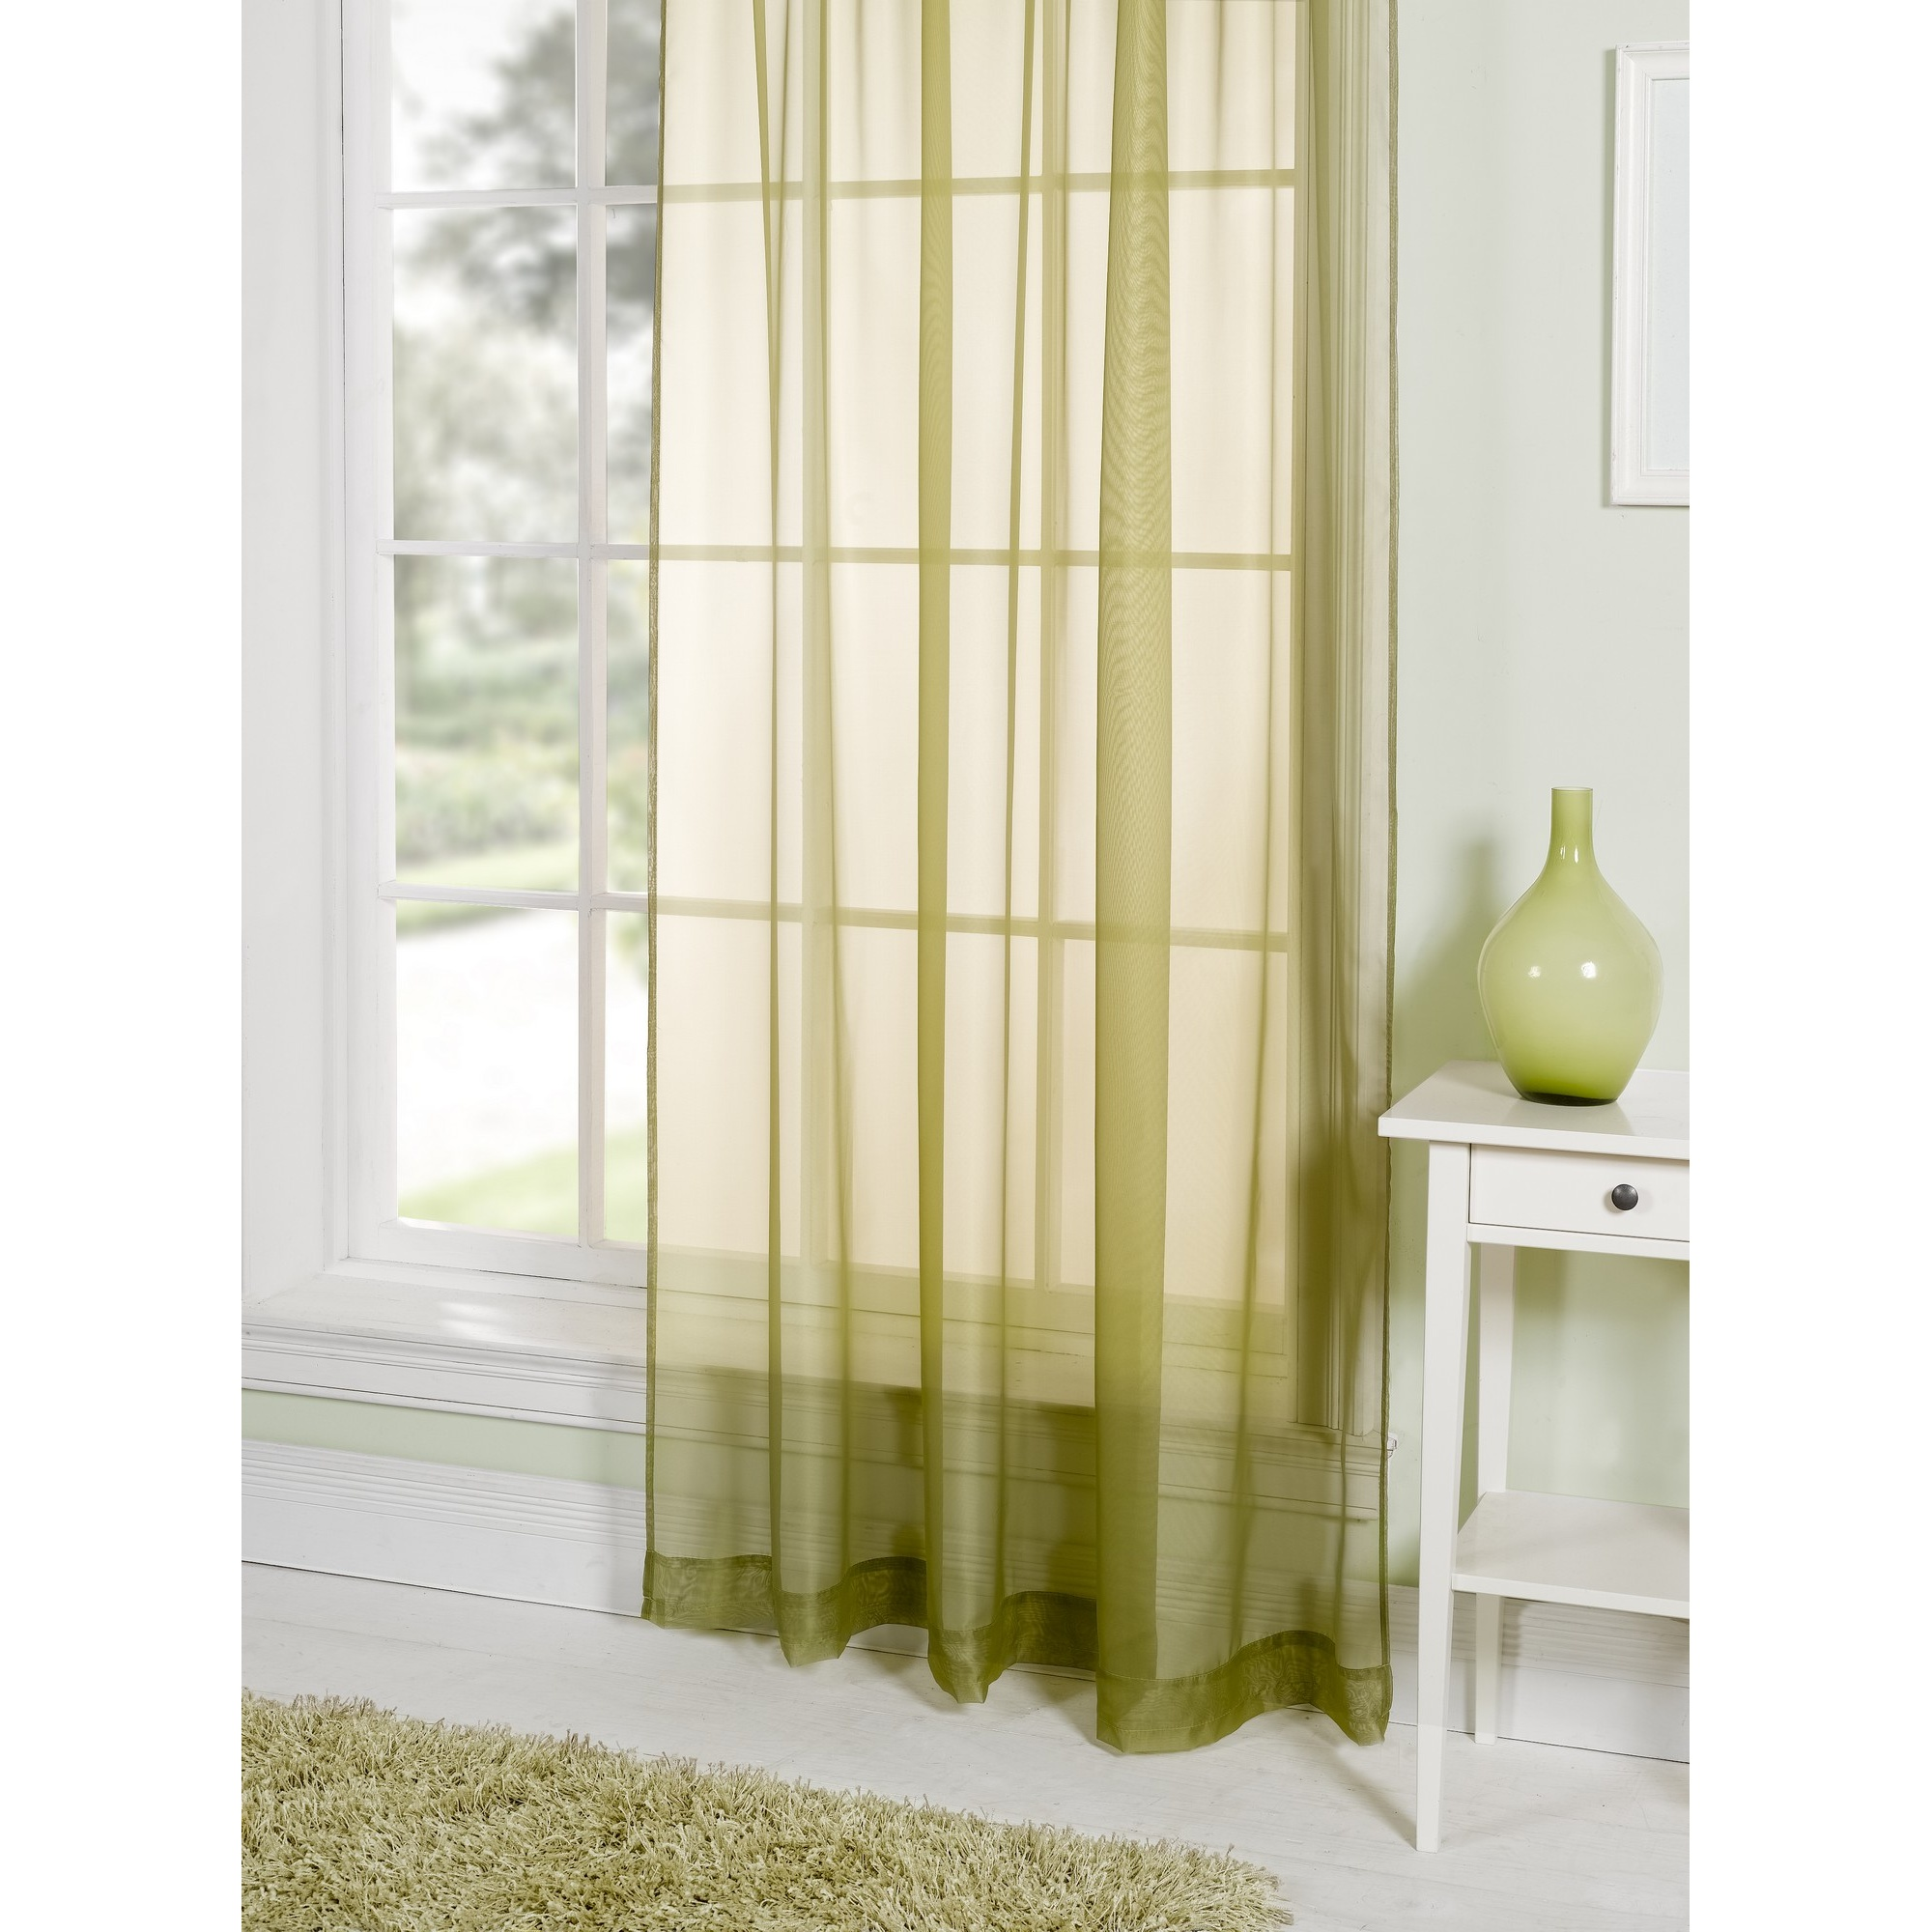 Colored sheer curtains - Lucy Plain Colored Scarf Valances Voile Panel Window